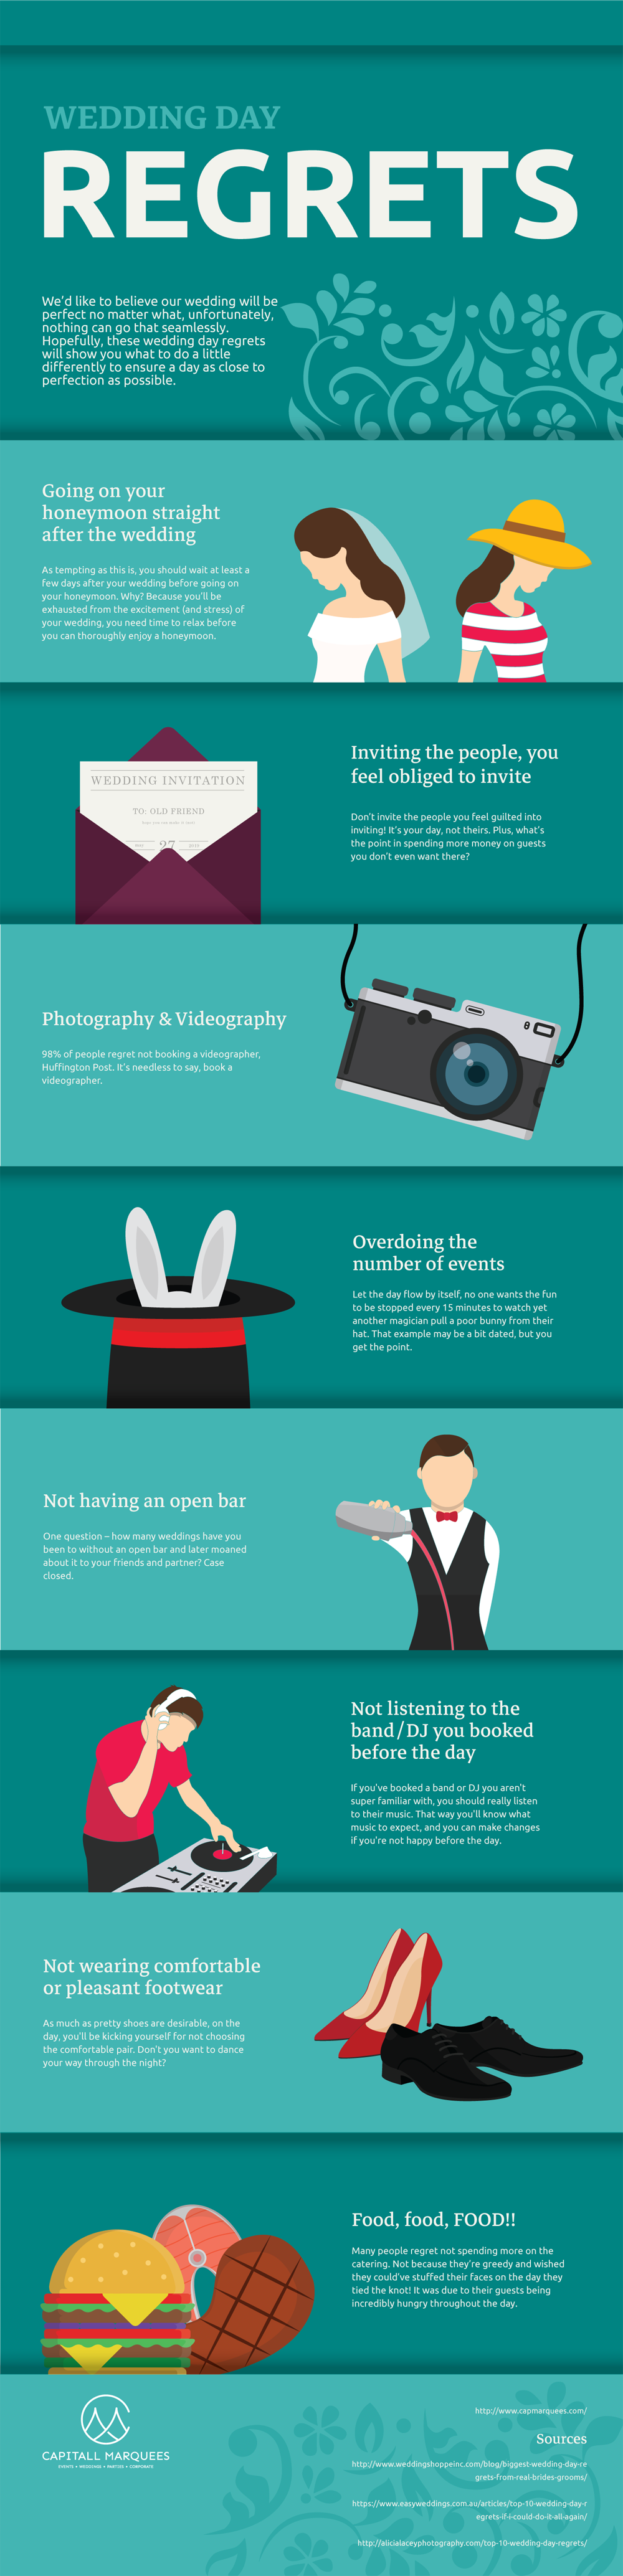 How to Remove the 'If Only's' and 'Wish We Had's' From Your Wedding Day - Infographic